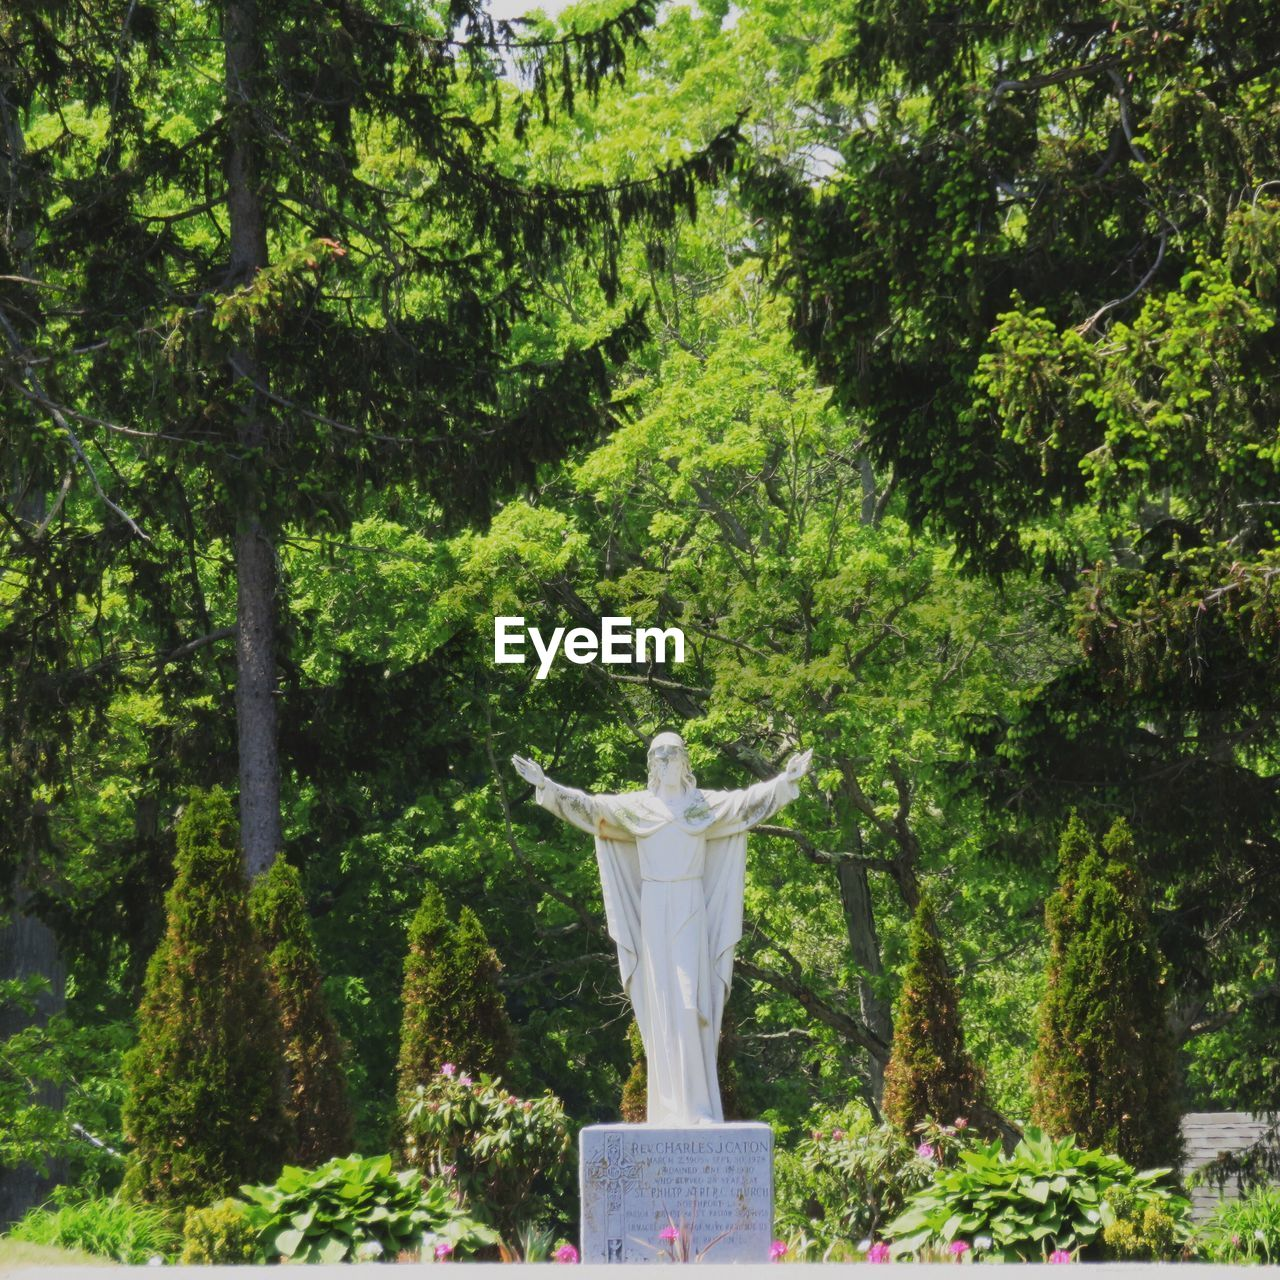 tree, nature, statue, human representation, green color, sculpture, lush foliage, day, outdoors, growth, no people